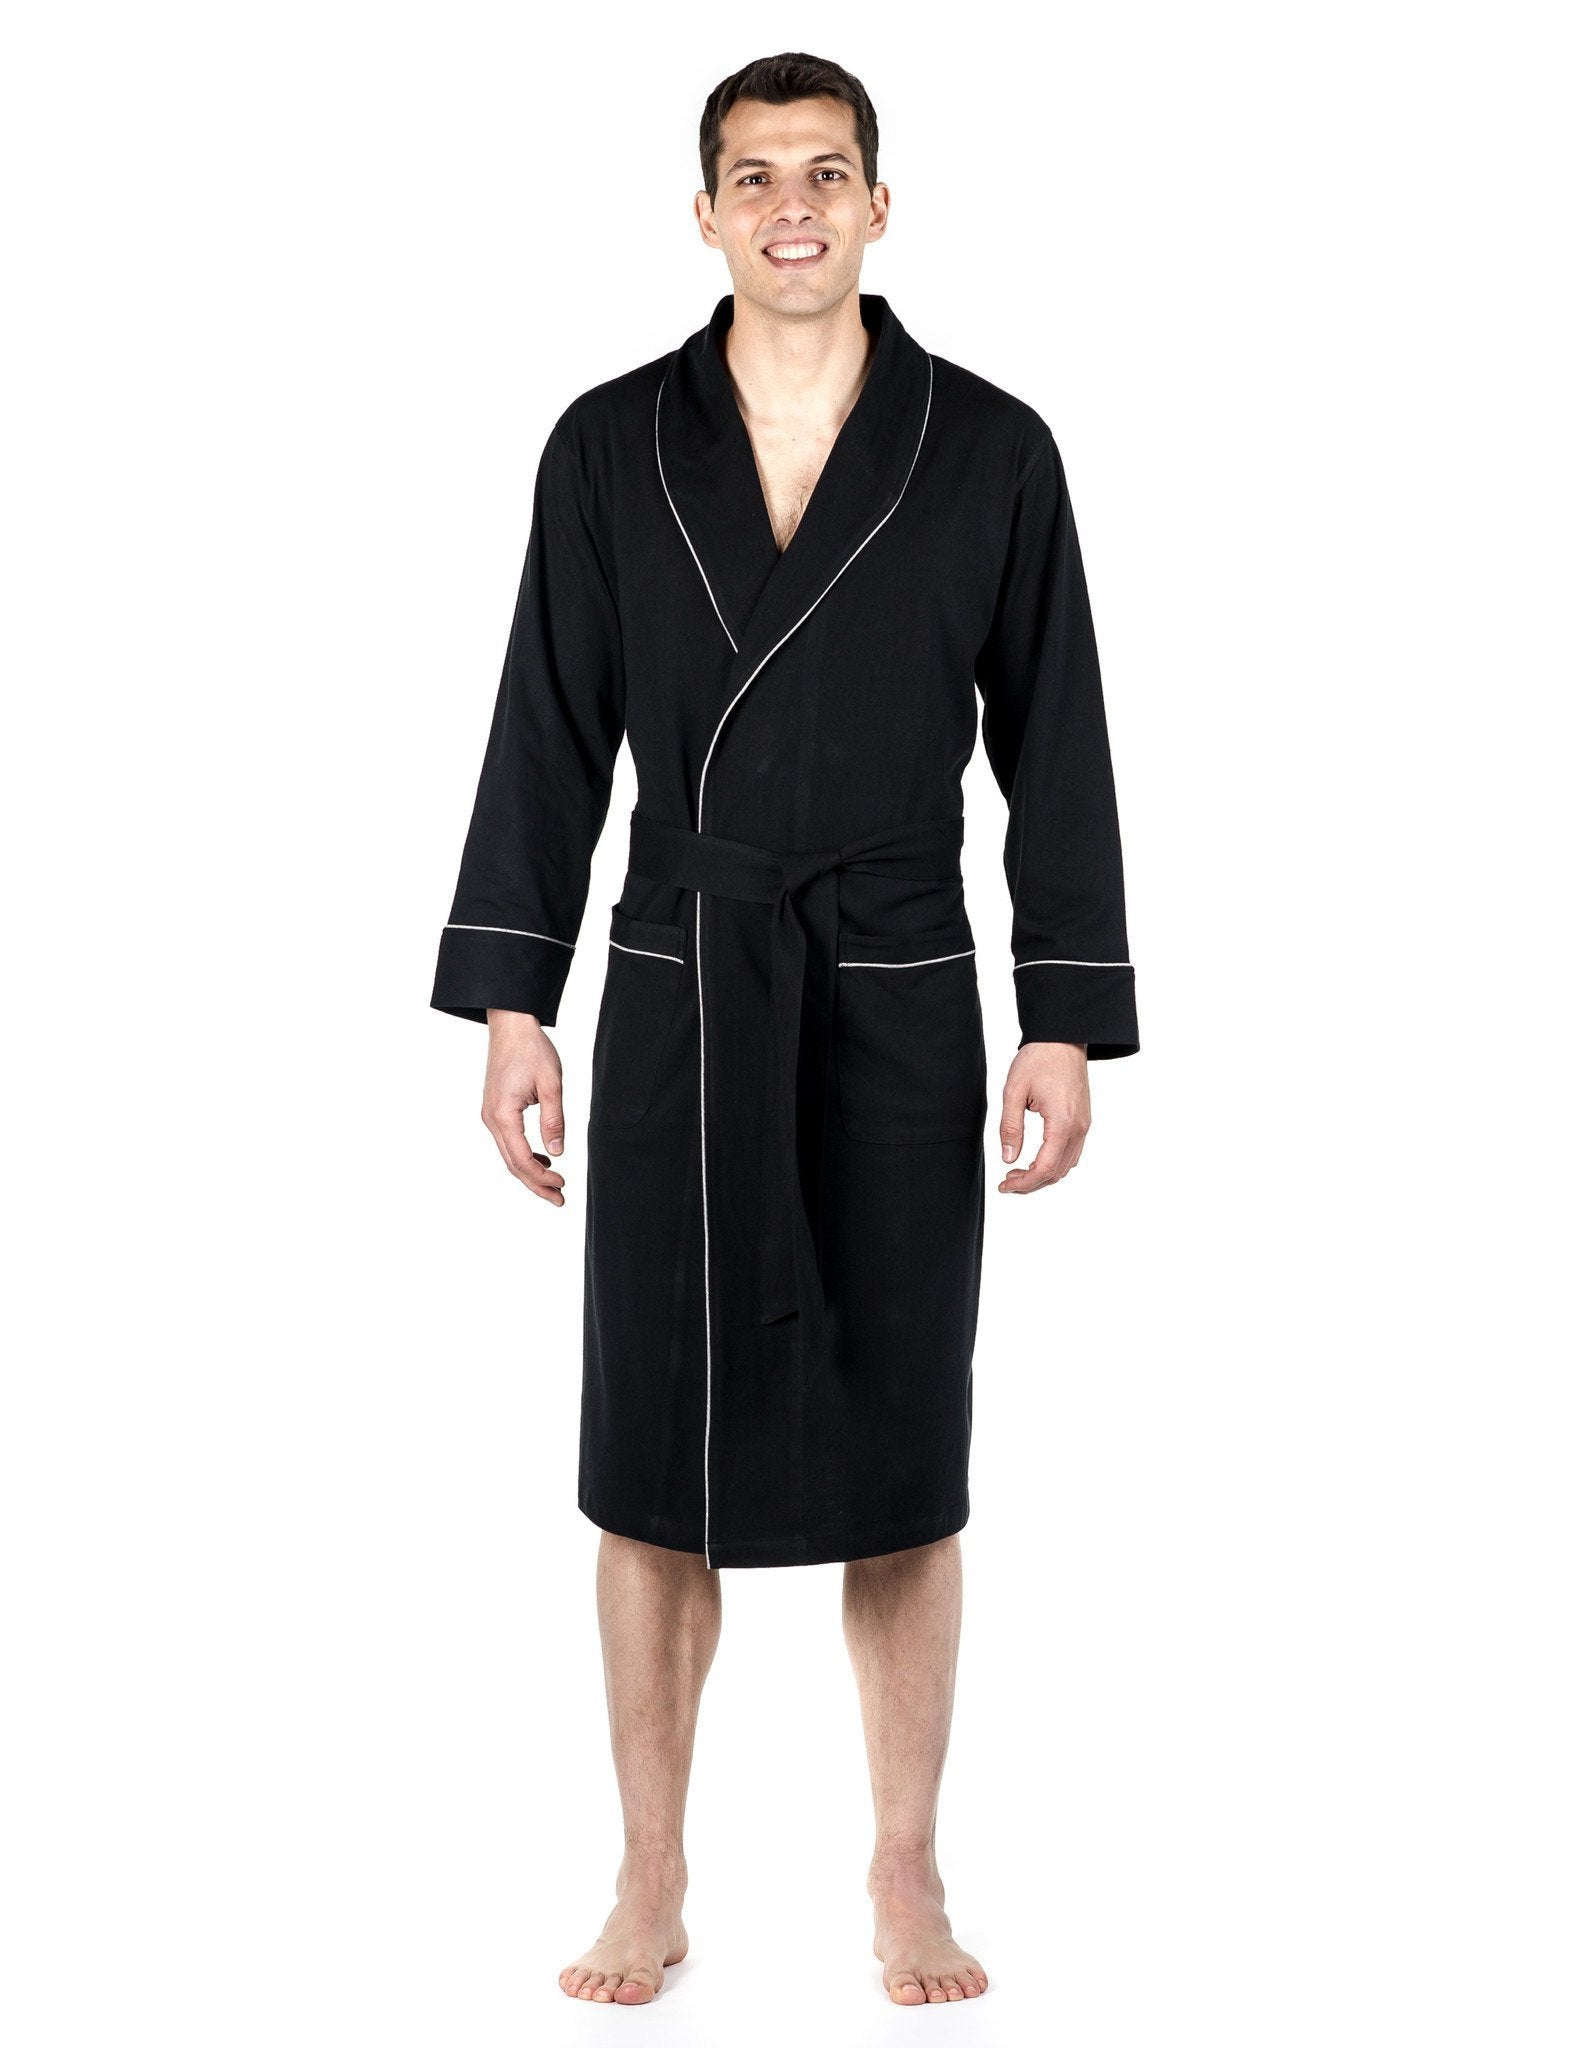 Men's Premium Knit Jersey Robe - Black